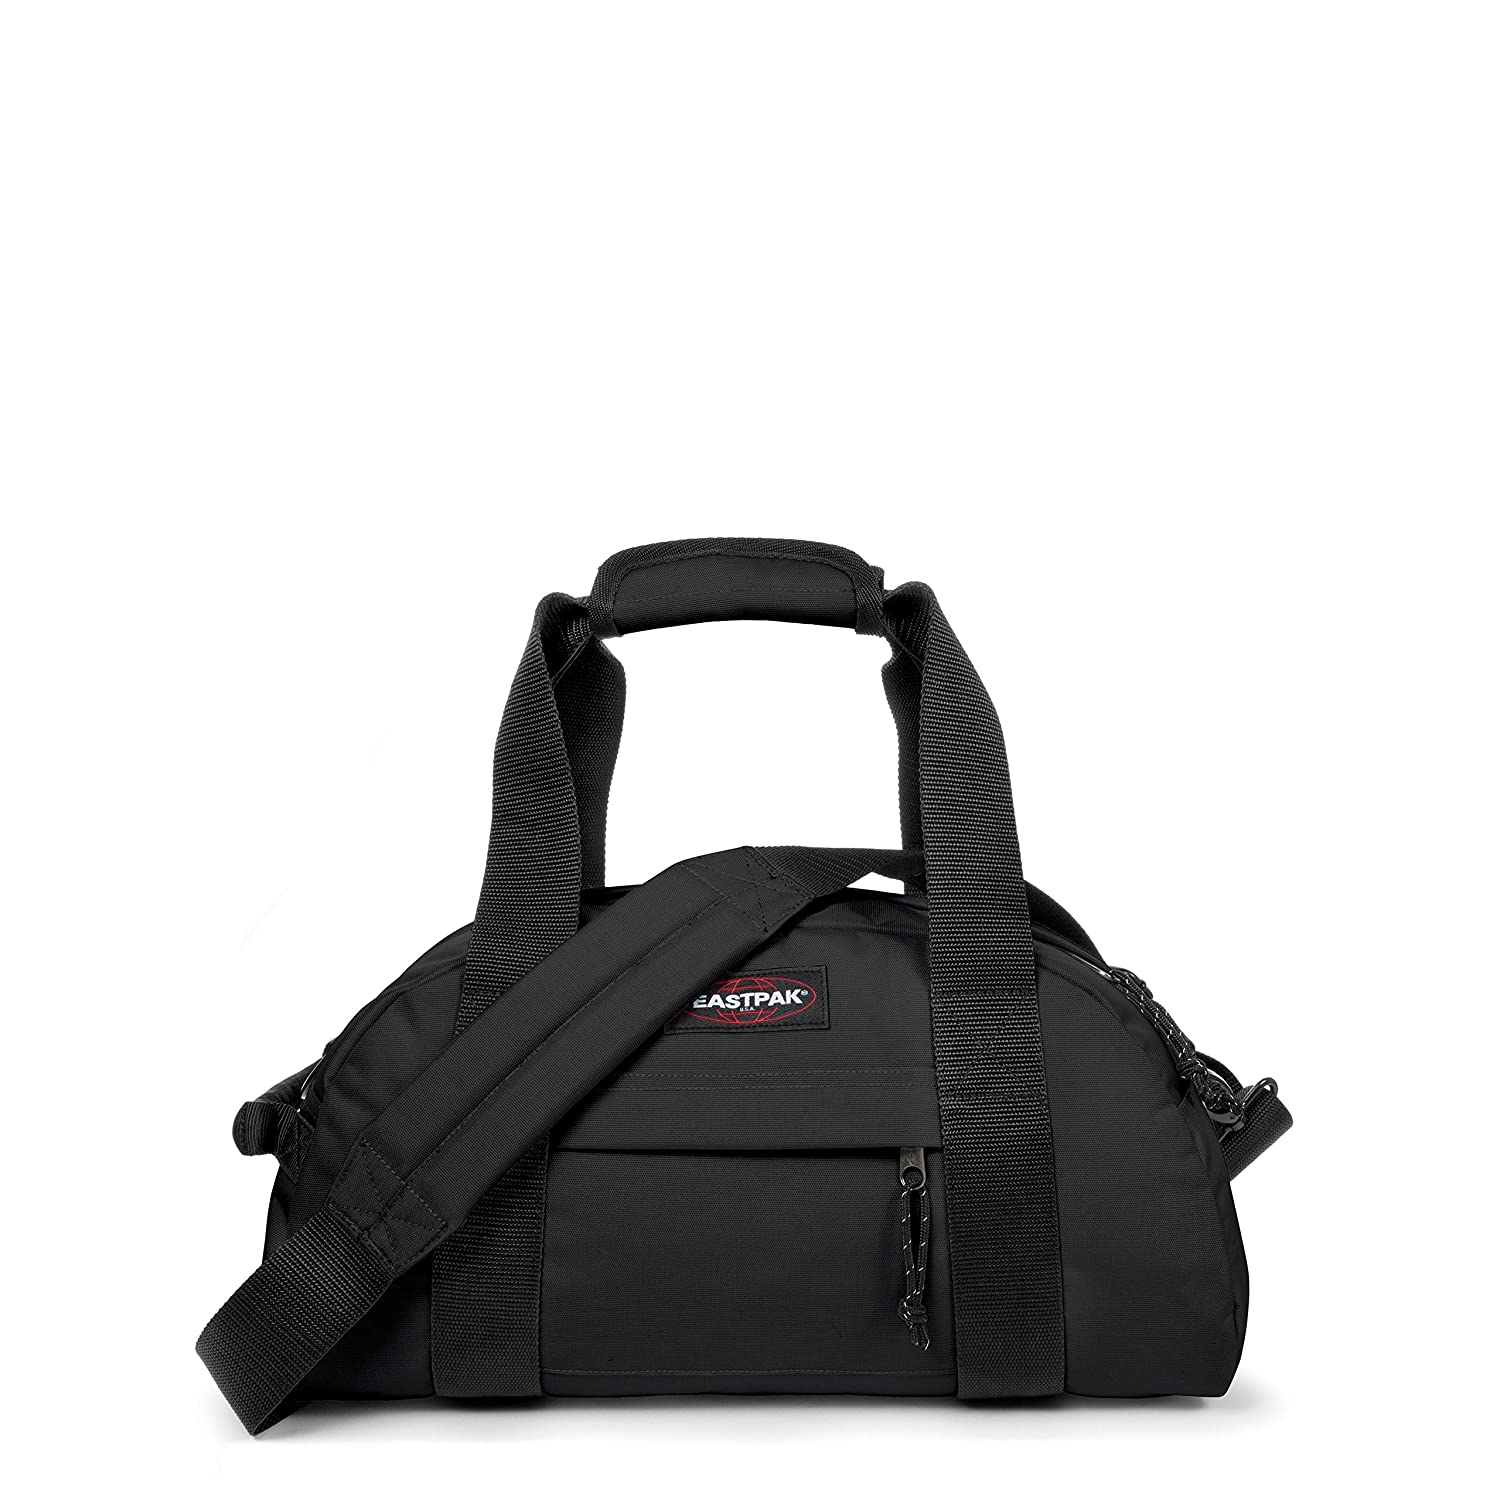 2a1068be2d Eastpak Compact Soft luggage, 46 cm, 23 L, Black: Amazon.co.uk: Luggage